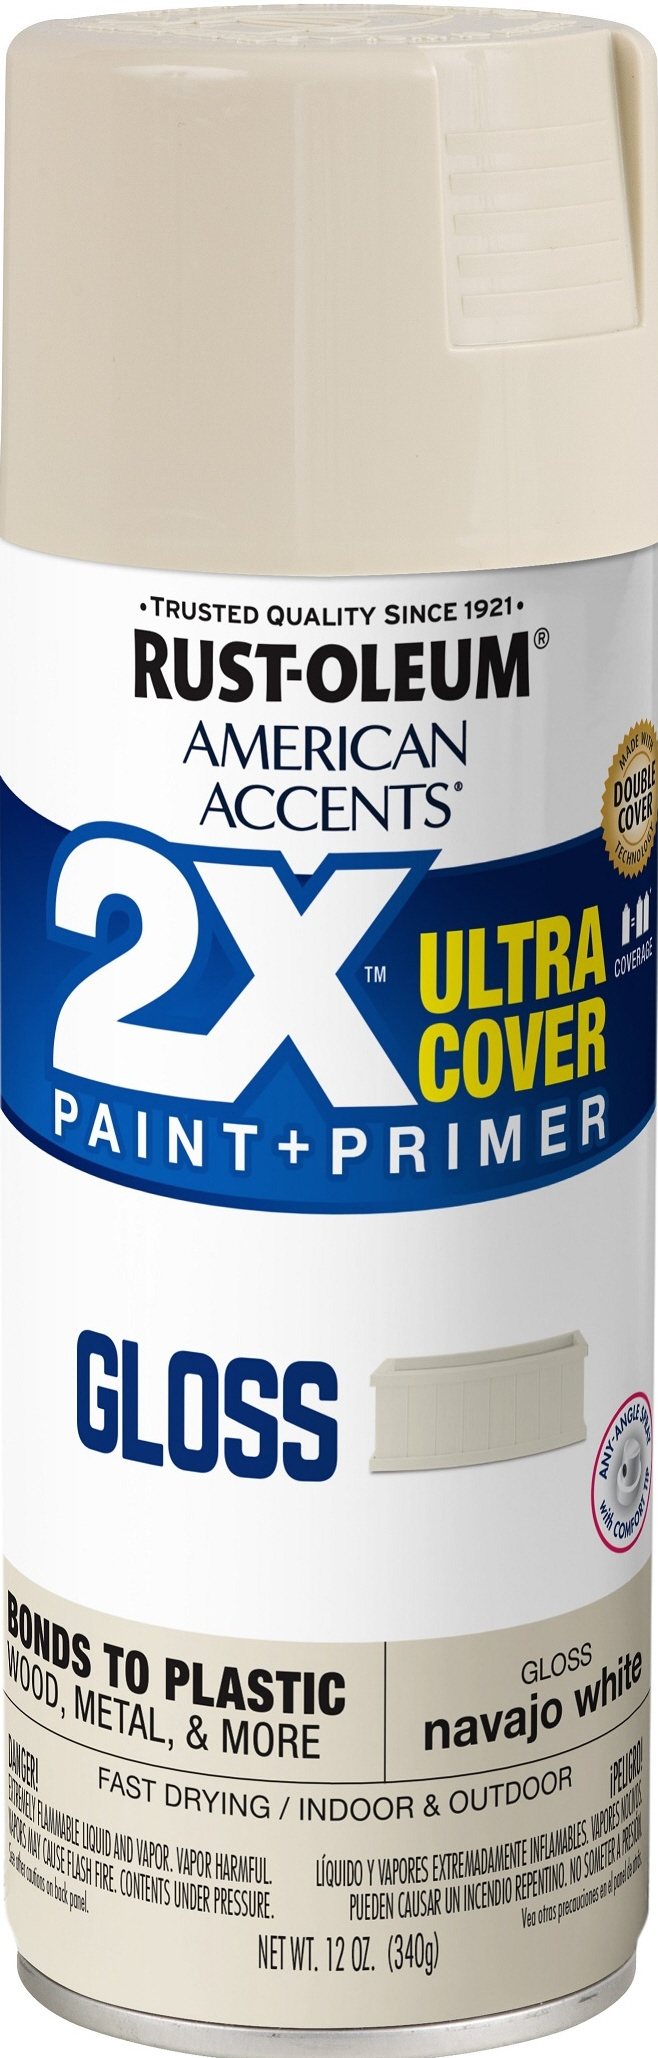 (3 Pack) Rust-Oleum American Accents Ultra Cover 2X Gloss Navajo White Spray Paint and Primer in 1, 12 oz